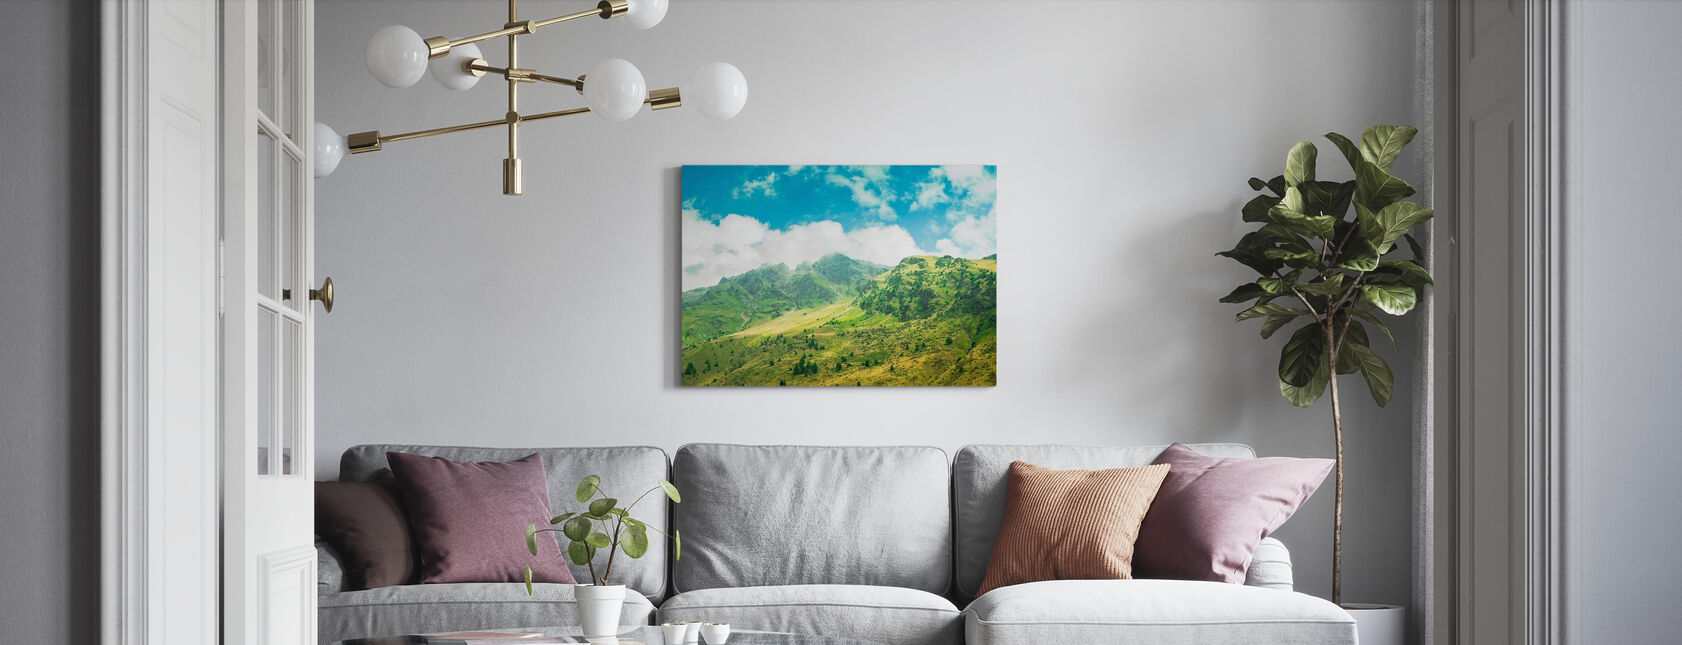 Chasing Space - Canvas print - Living Room